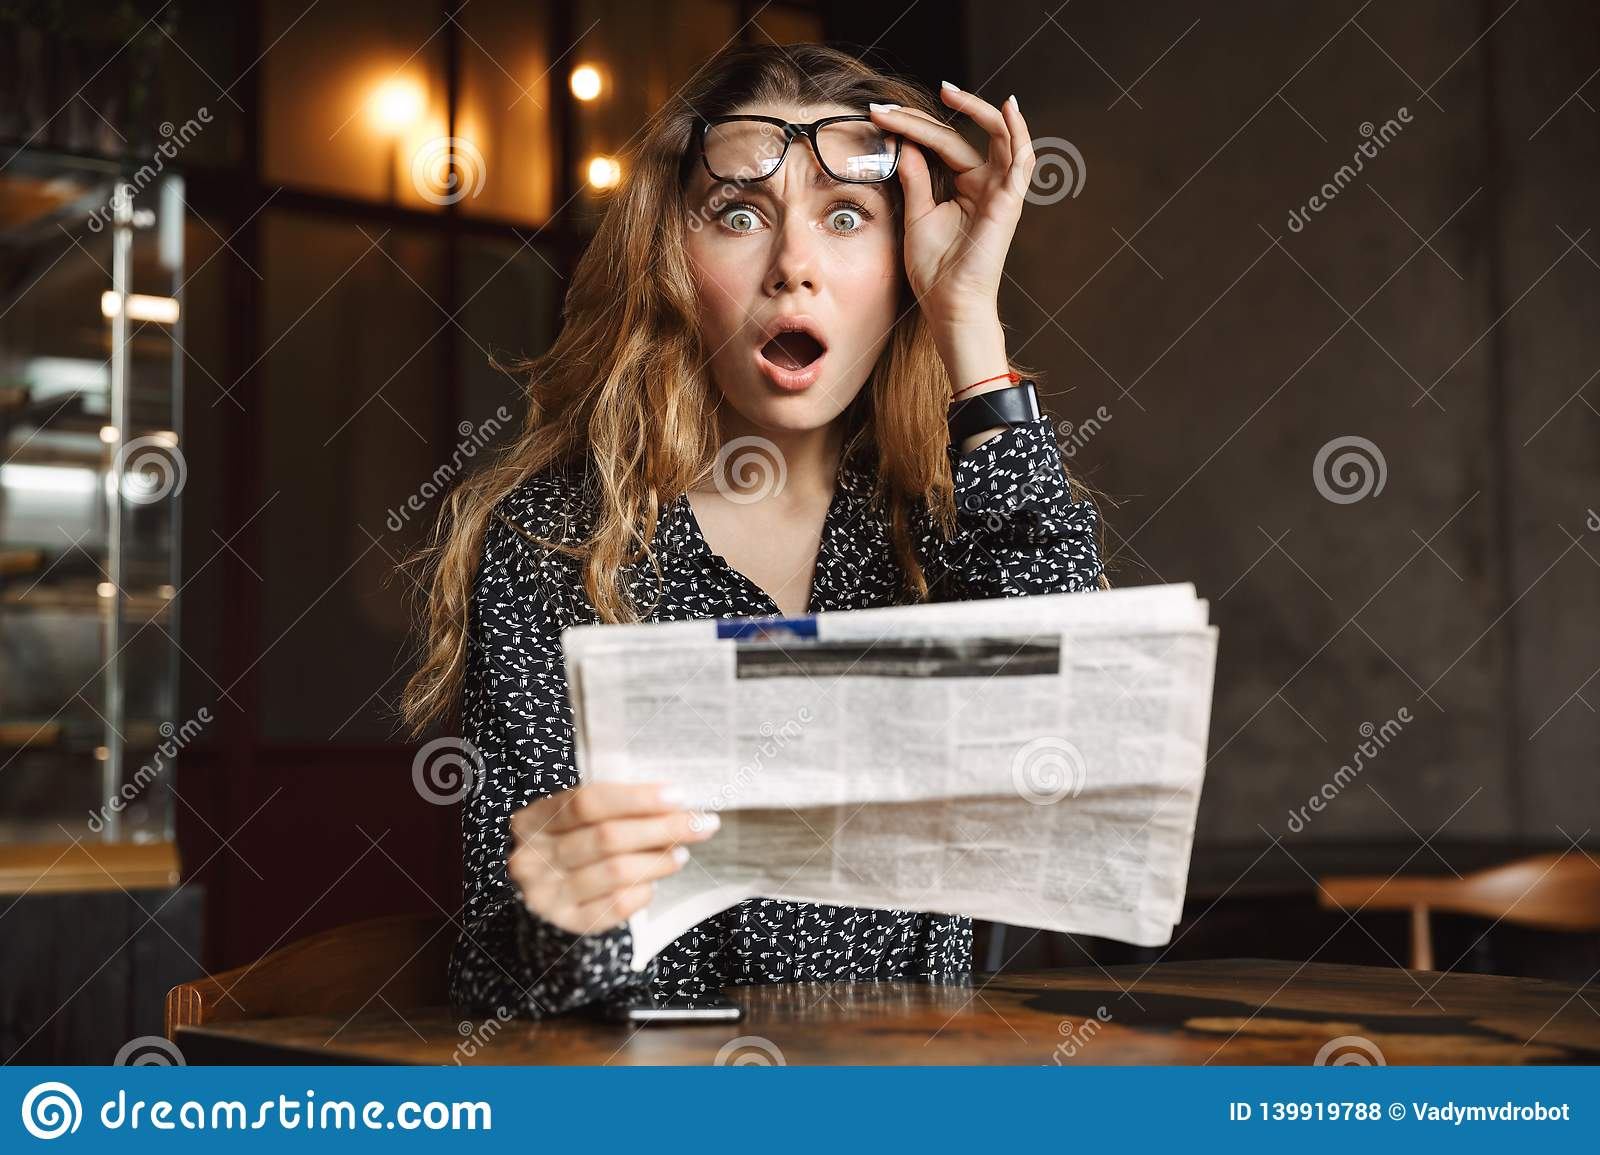 Beautiful shocked excited young woman sitting in cafe indoors reading newspaper